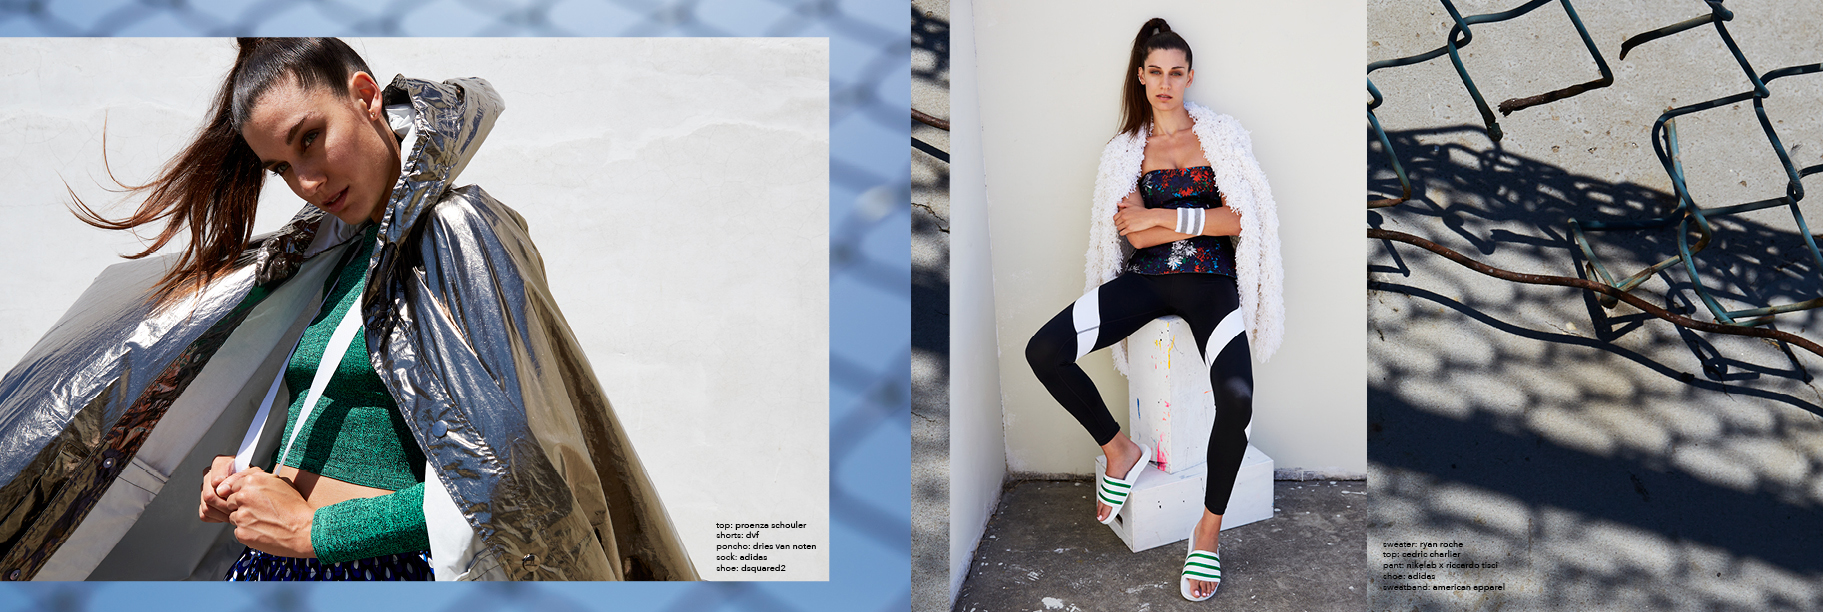 'COURTSIDE' FOR INSTITUTE MAGAZINE | STYLING + ART DIRECTION